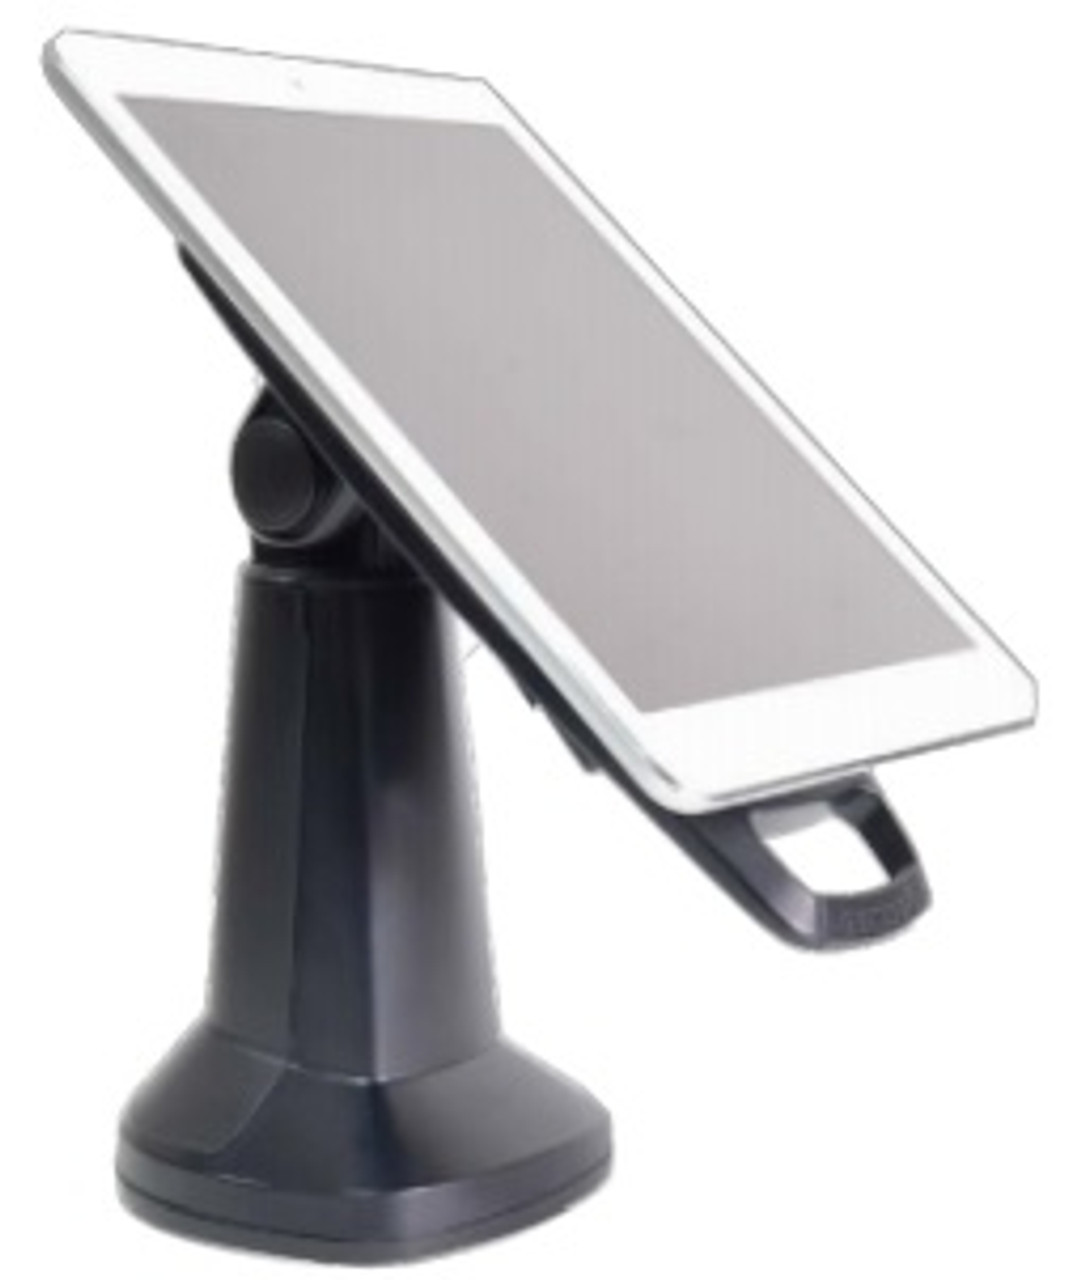 FlexiPole Tablet Universal Mounting Stand by ENS